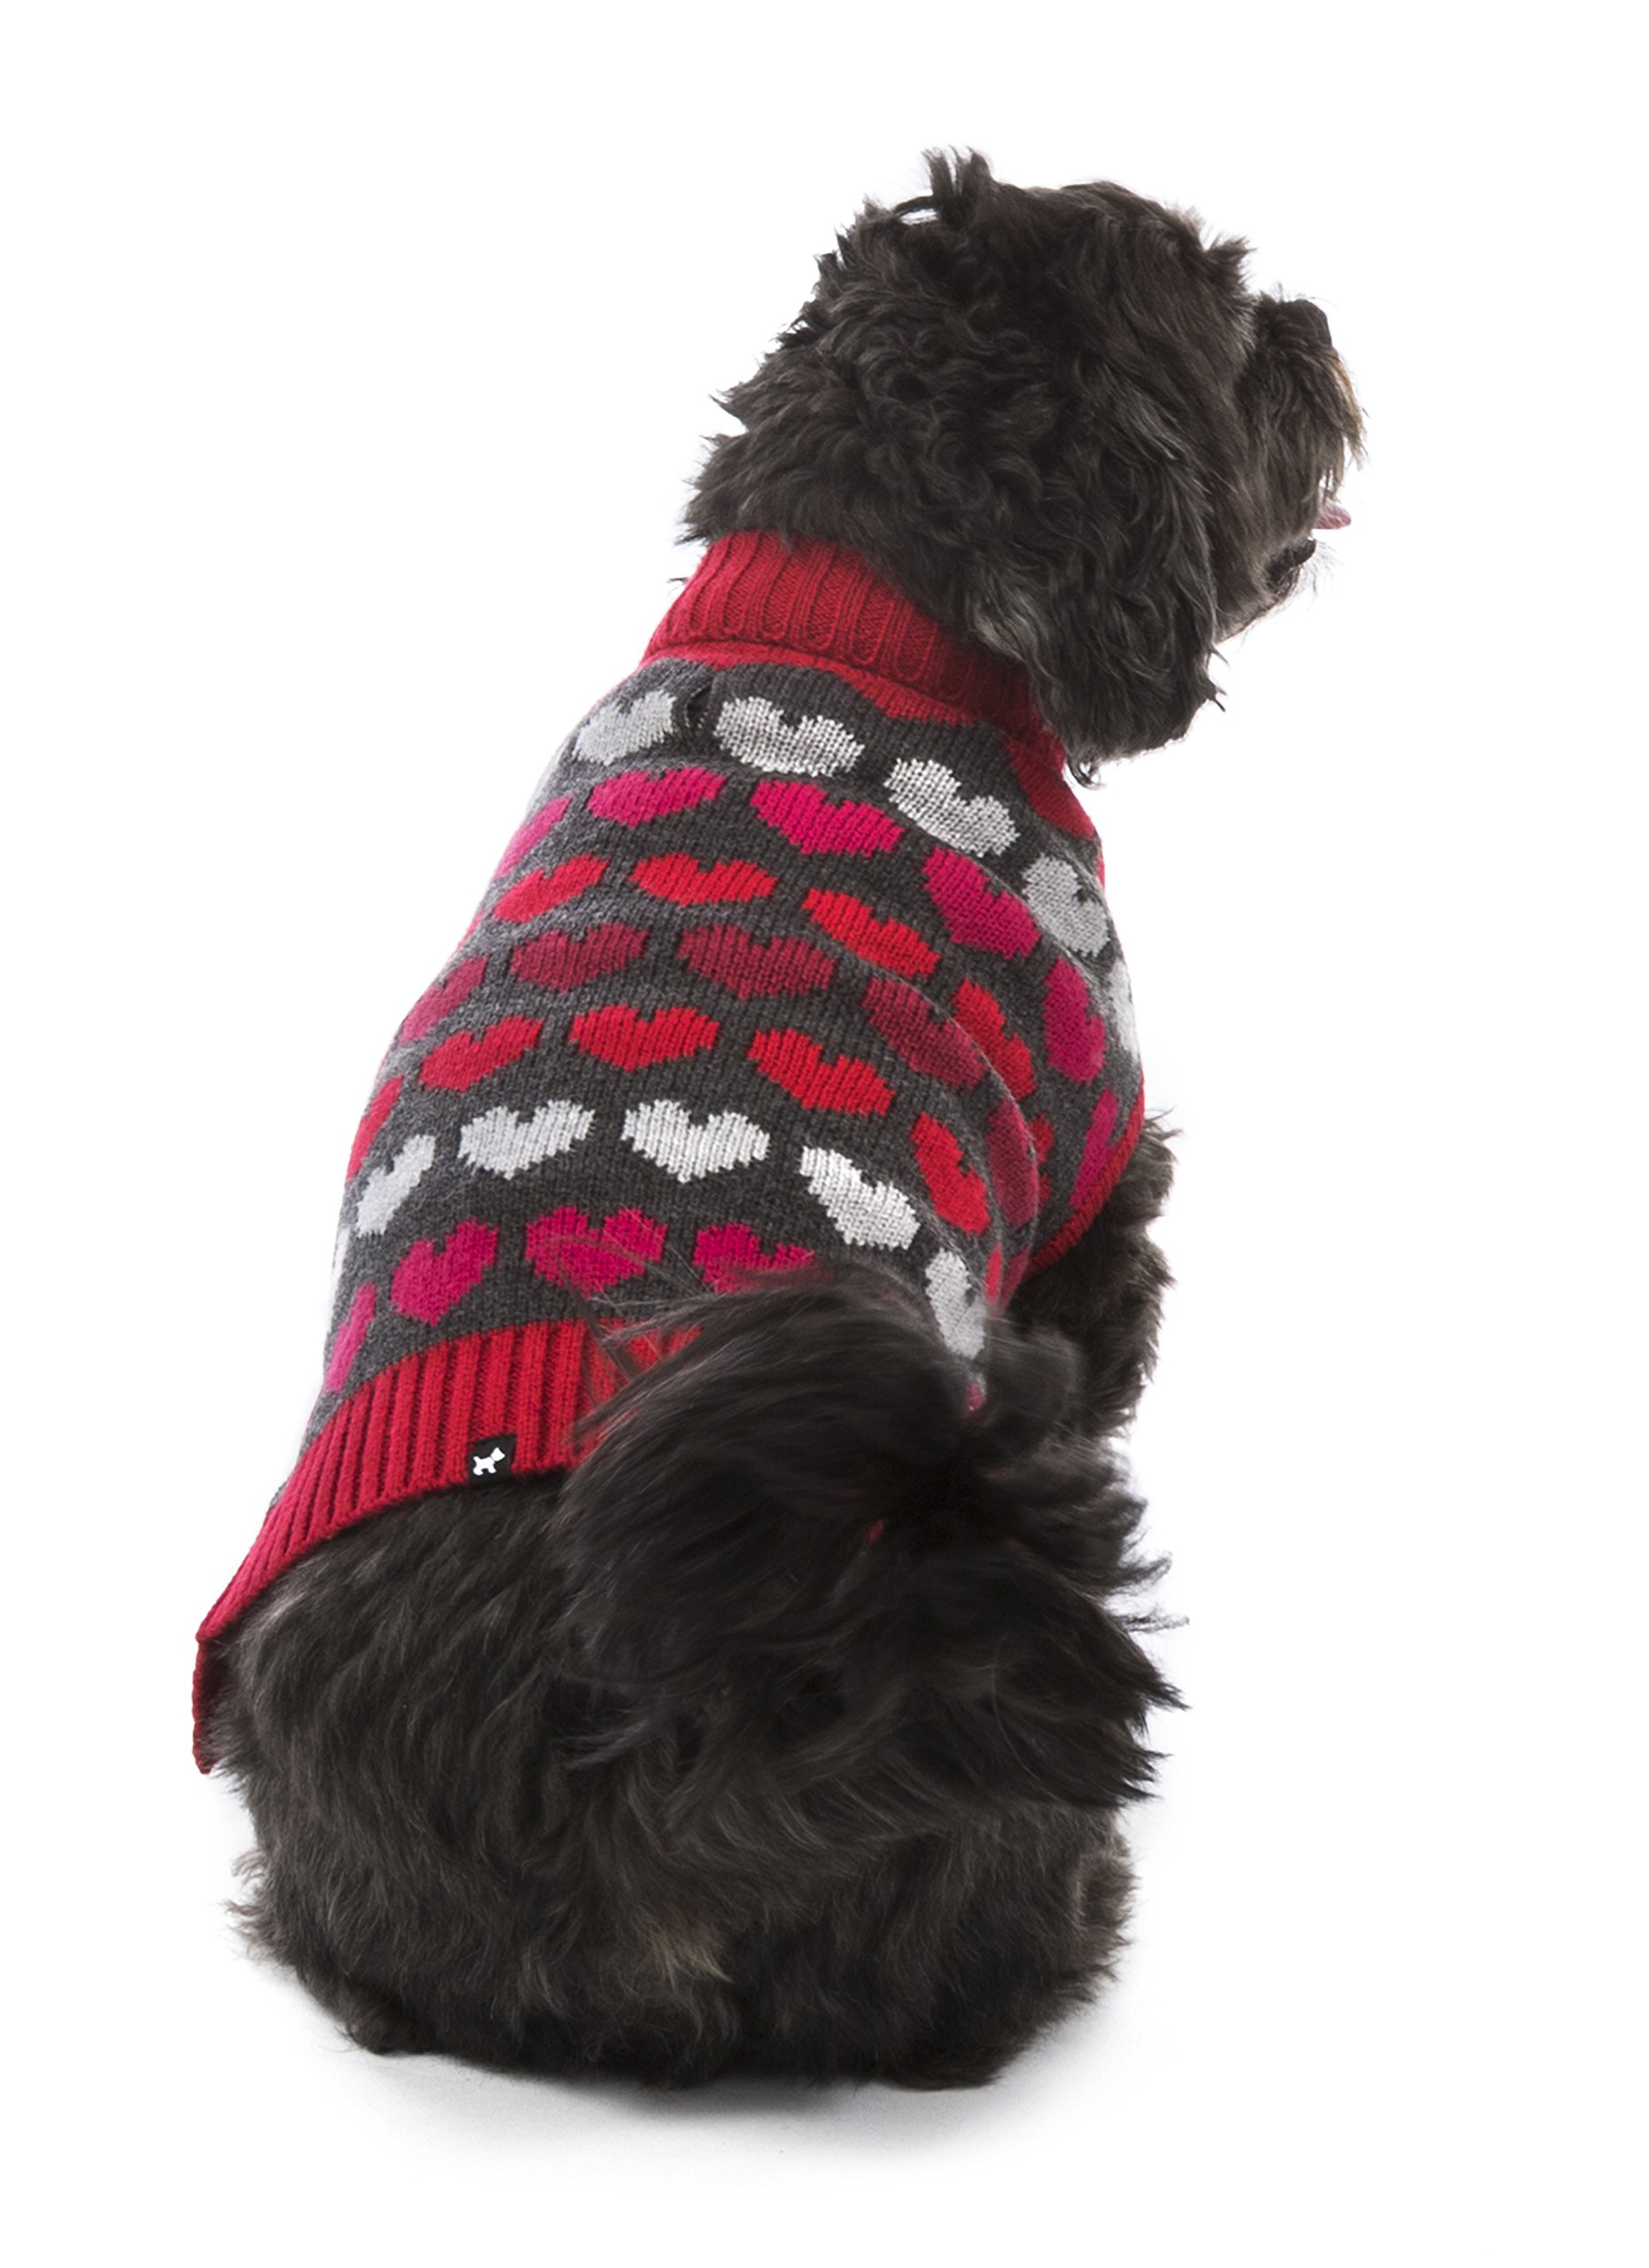 Hotel Doggy Multi Heart Turtleneck Dog Sweater Cranberry Red, Dog Clothing S by Hotel Doggy